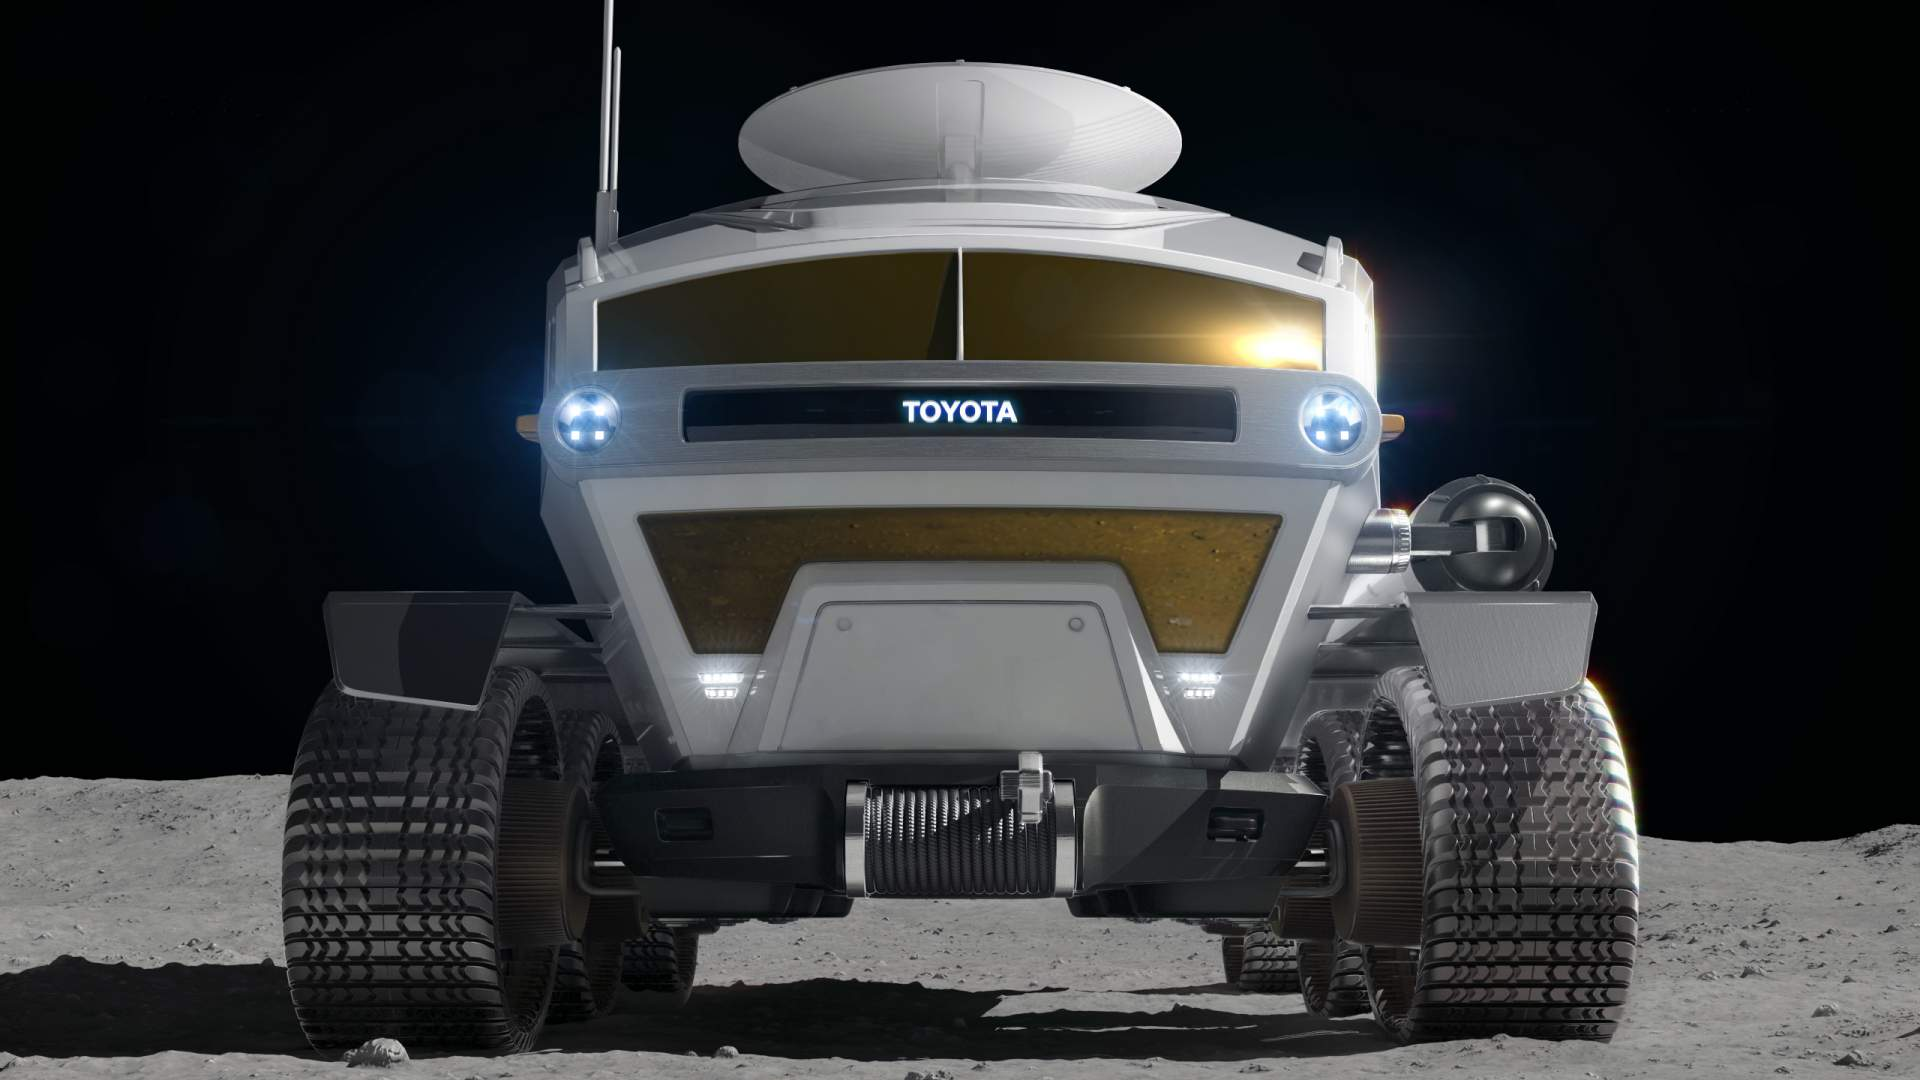 toyota-fuel-cell-electric-lunar-rover-project-3.jpg